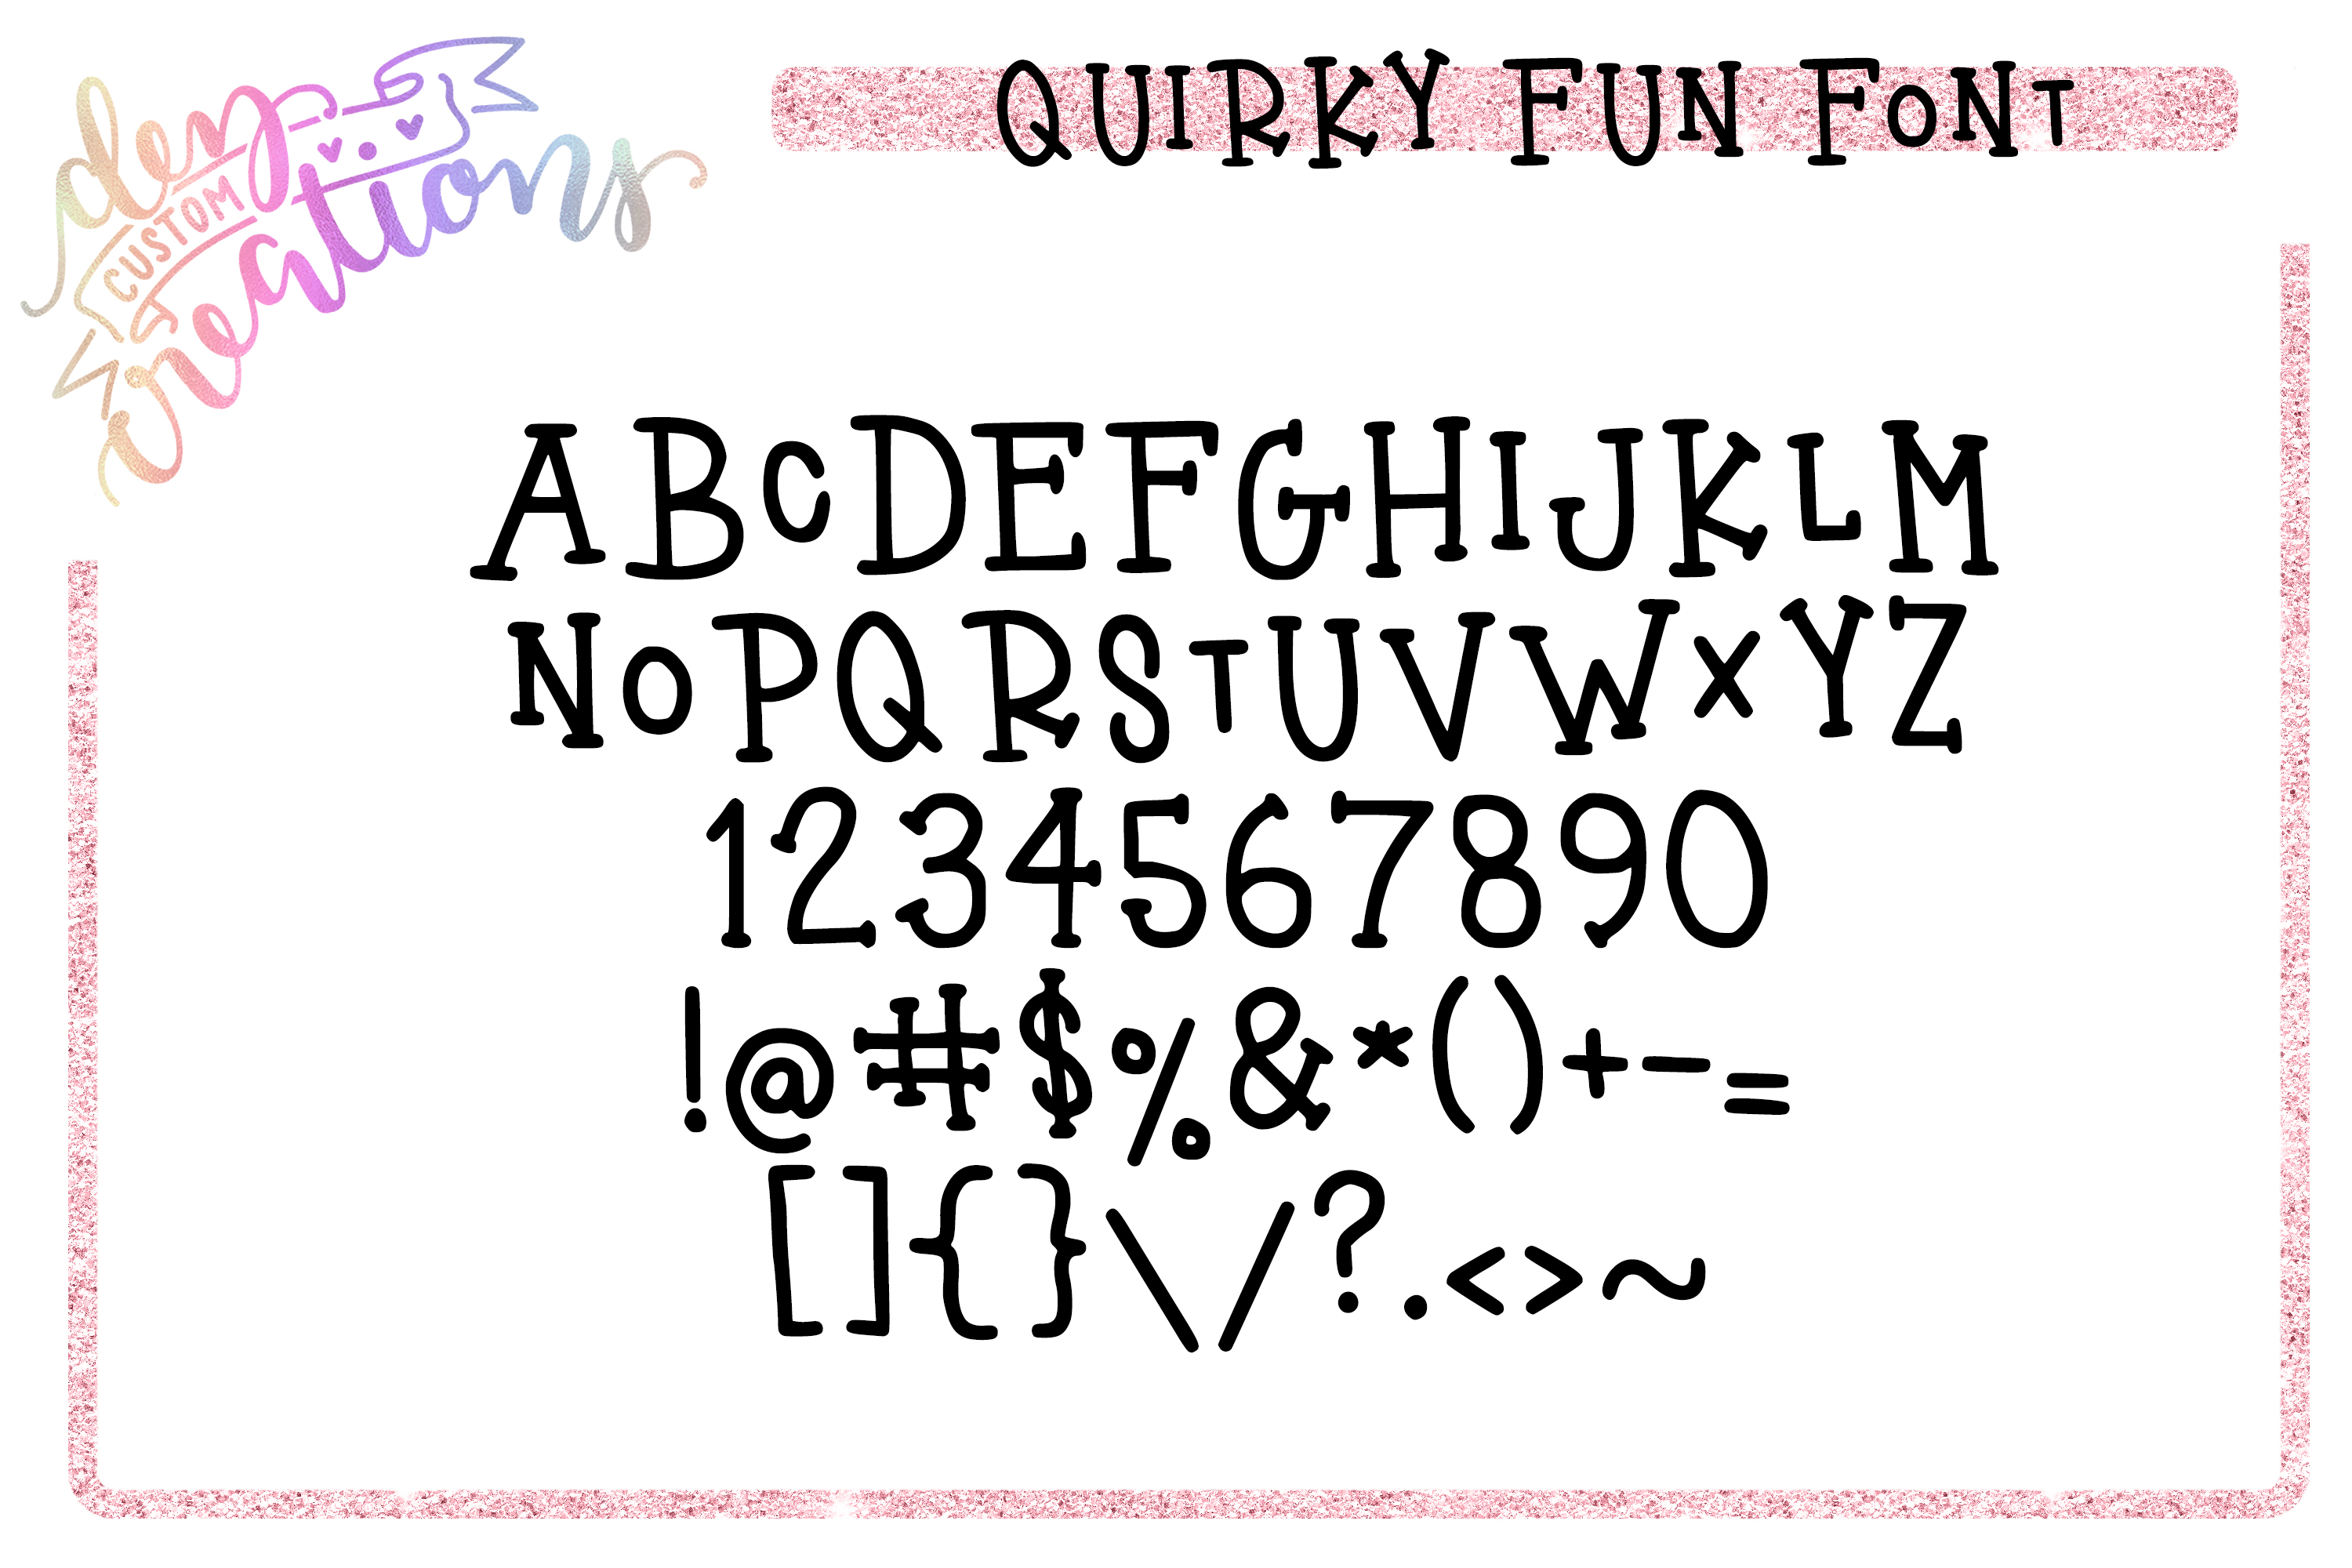 Quirky Fun - Hand Lettered Serif Font example image 10